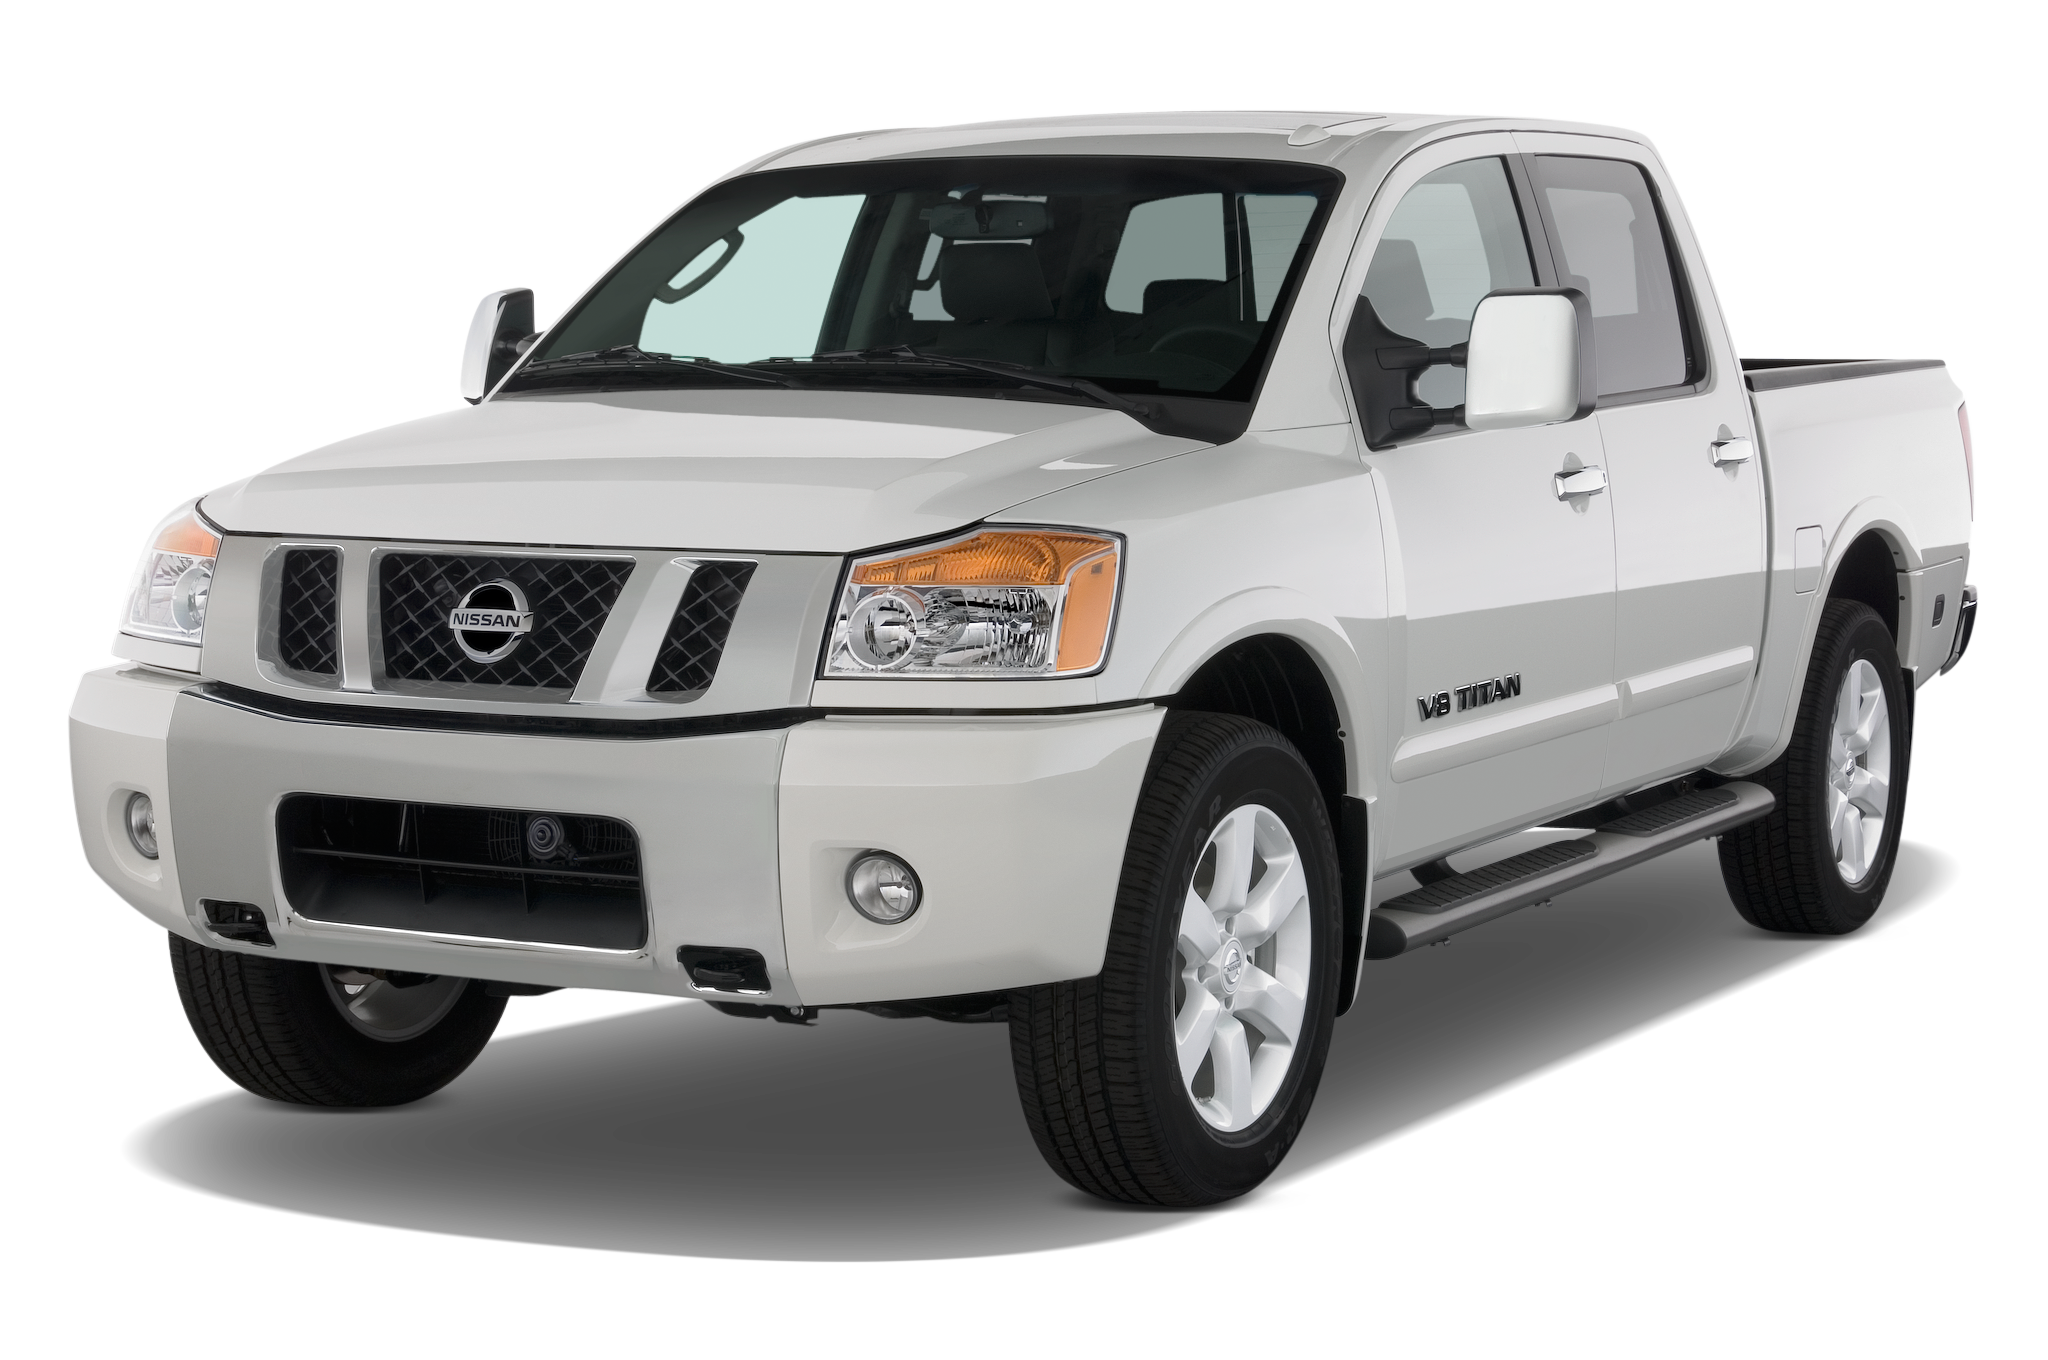 2012 nissan titan overview msn autos. Black Bedroom Furniture Sets. Home Design Ideas